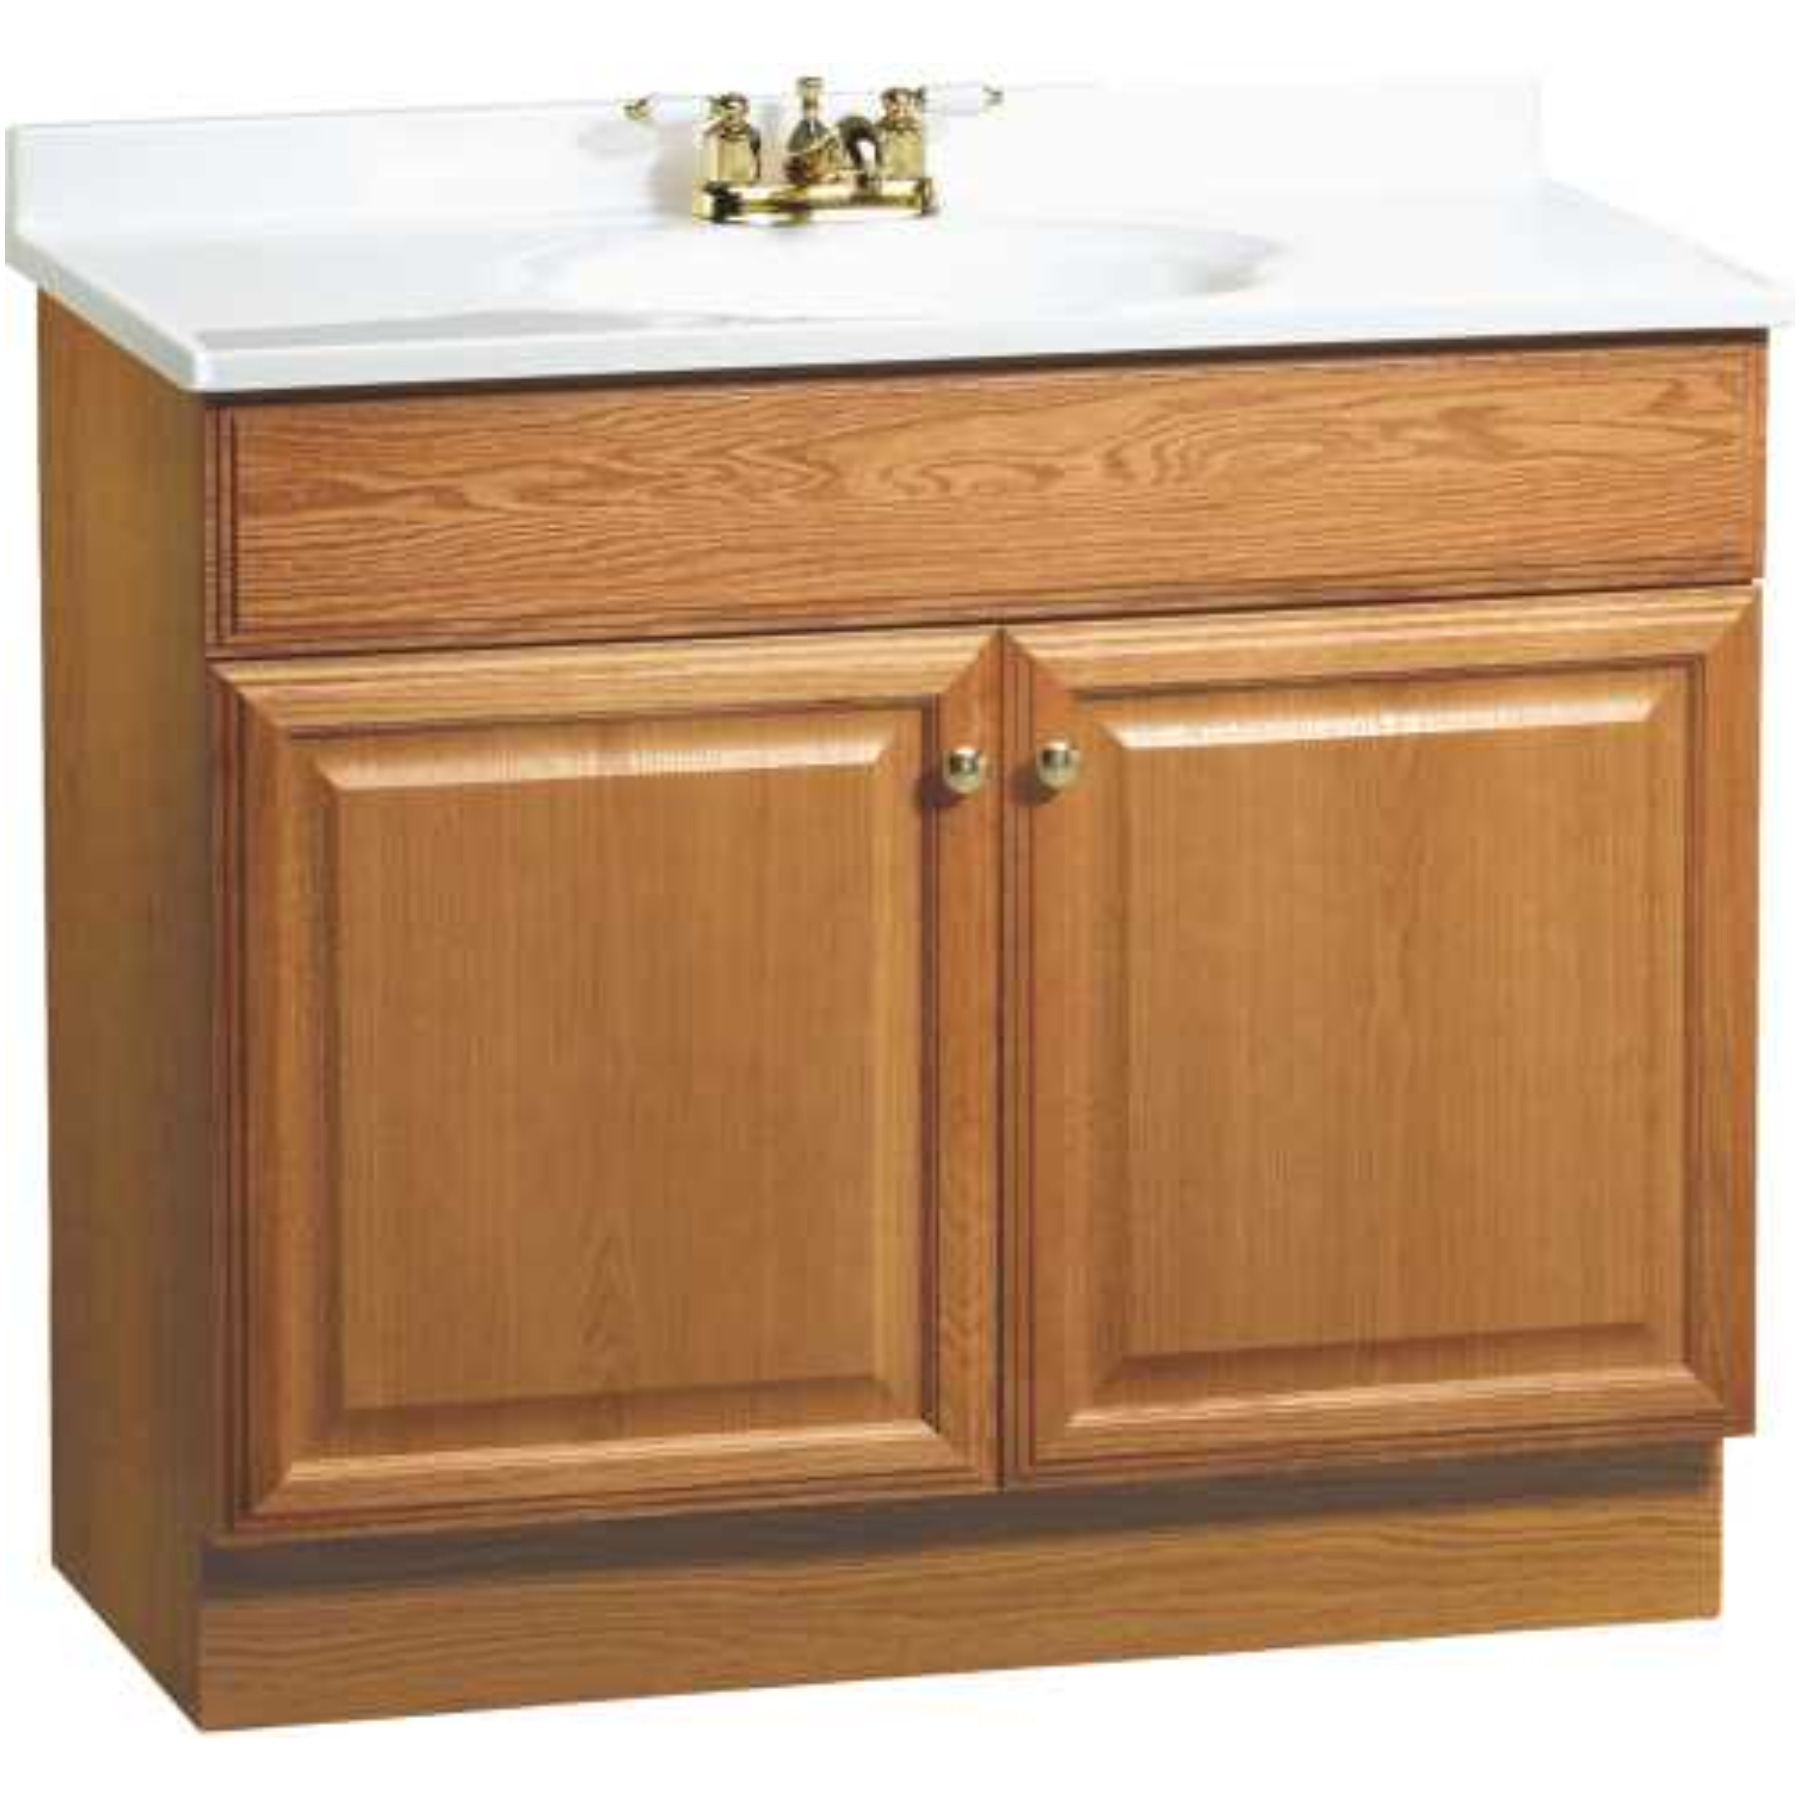 """RSI HOME PRODUCTS RICHMOND BATHROOM VANITY CABINET WITH TOP, FULLY ASSEMBLED, 2 DOOR, OAK FINISH, 36 X 31X 18"""""""